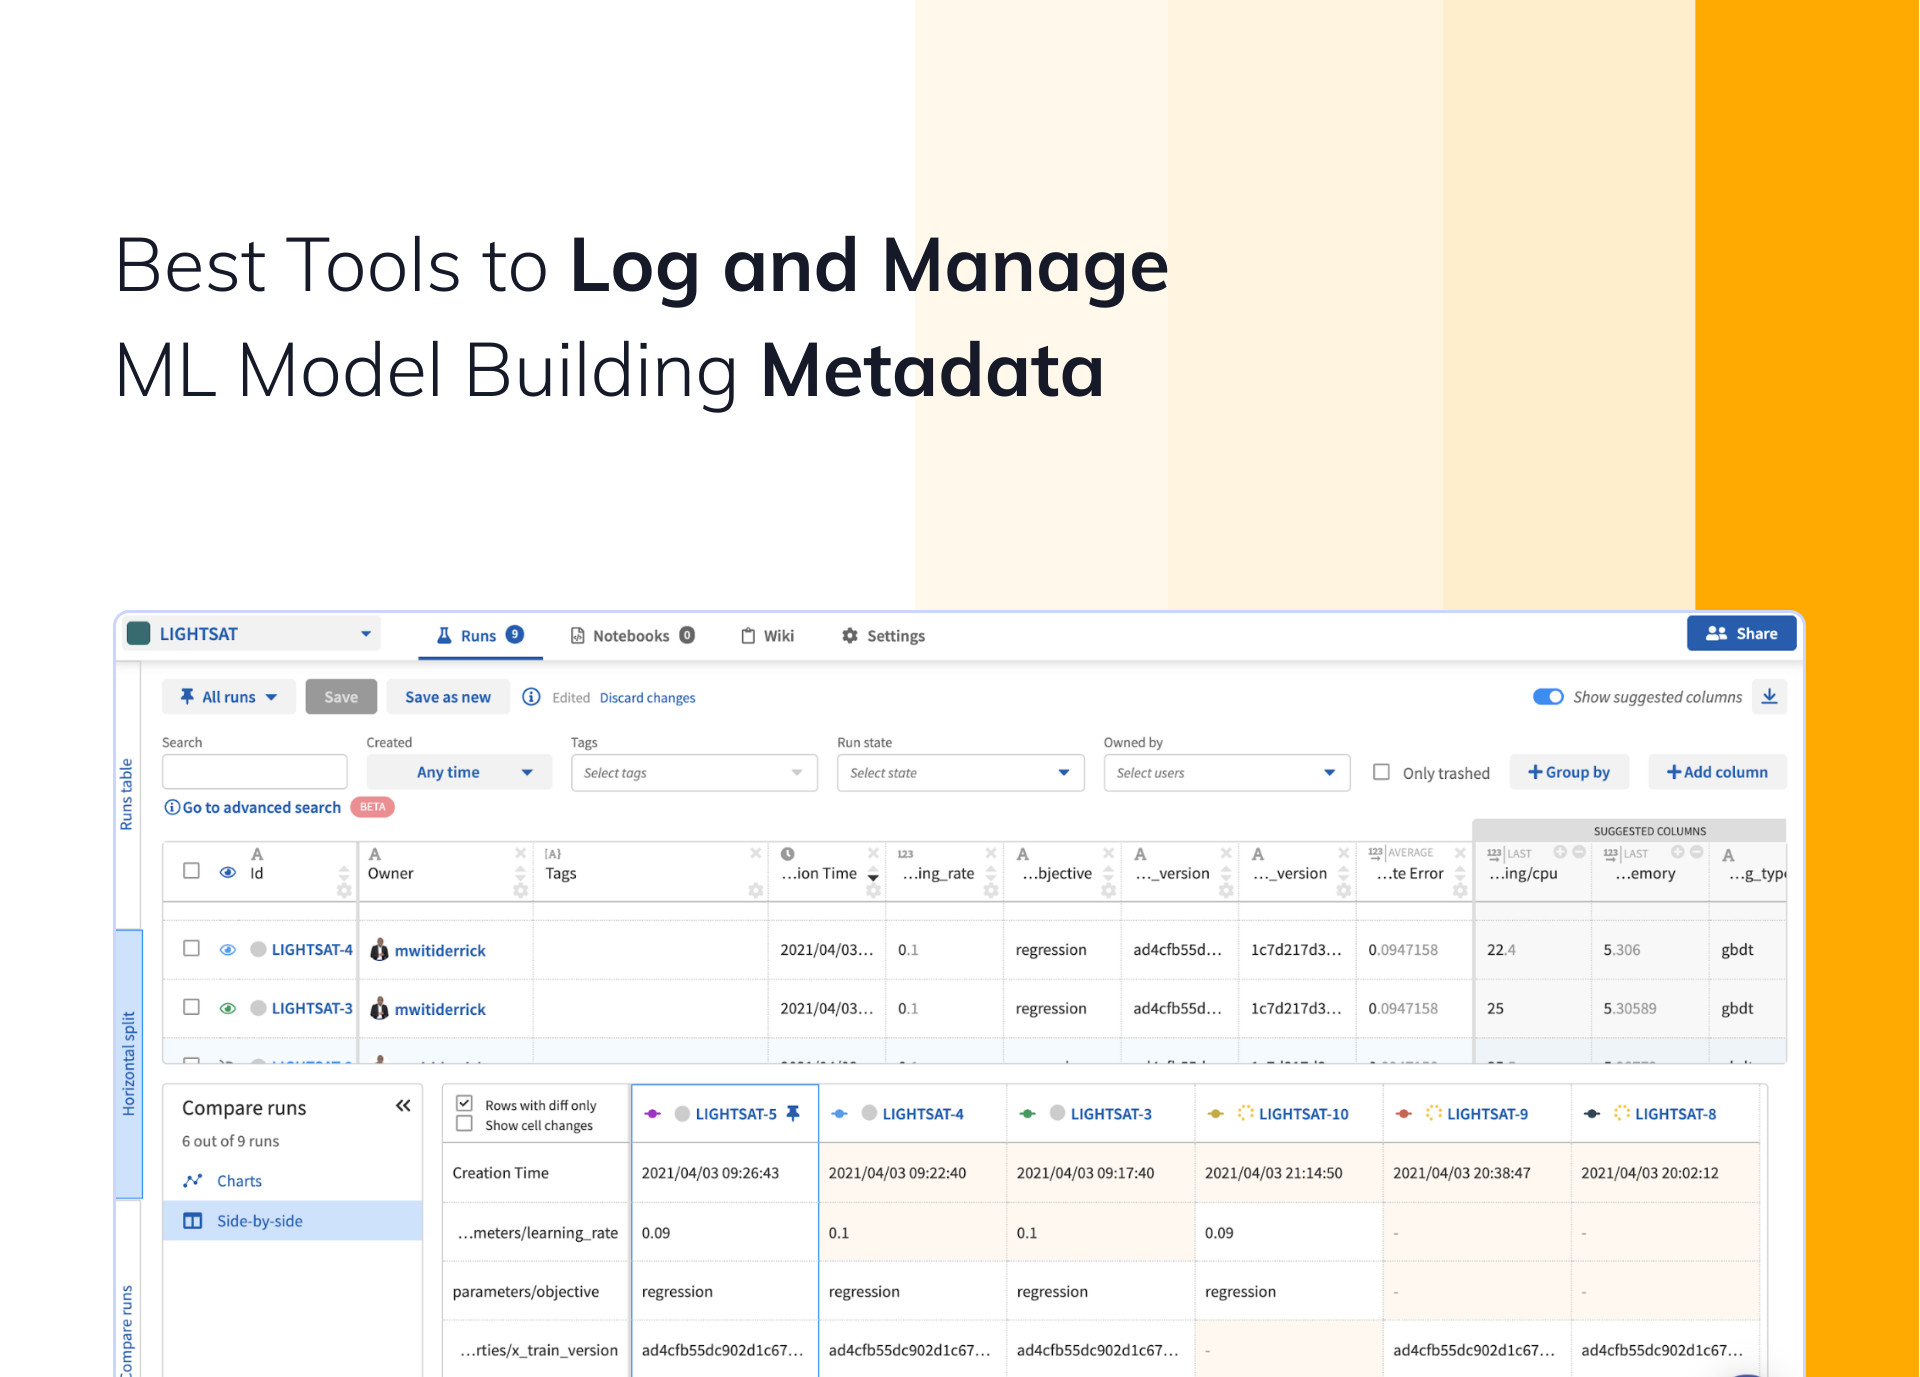 Best Tools to Log and Manage ML Model Building Metadata